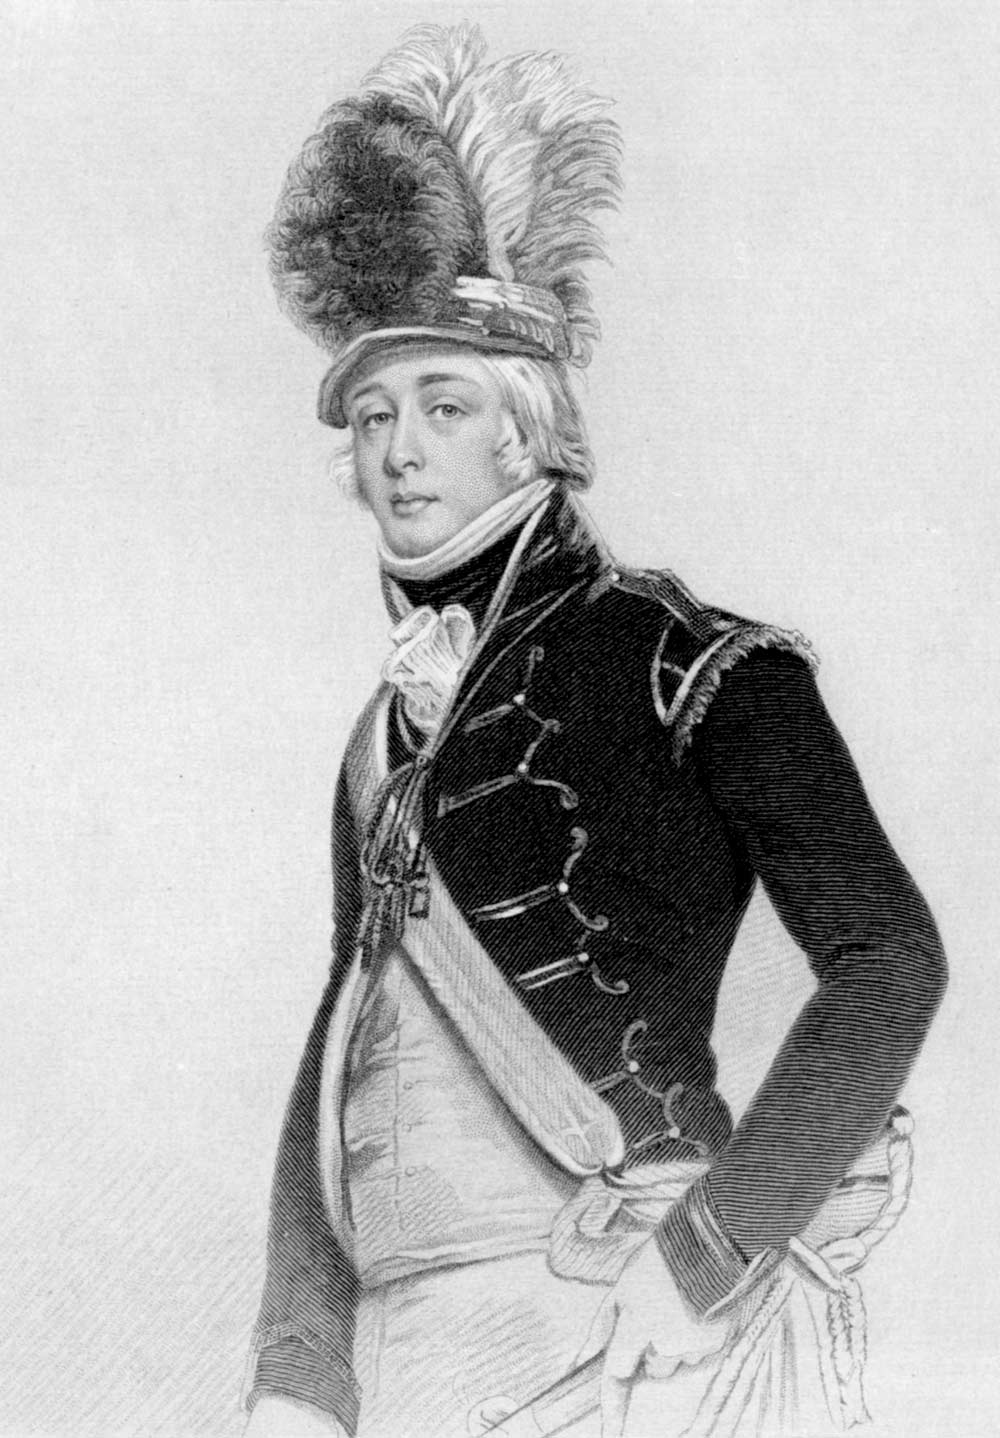 William Palgrave jnr in uniform 1798